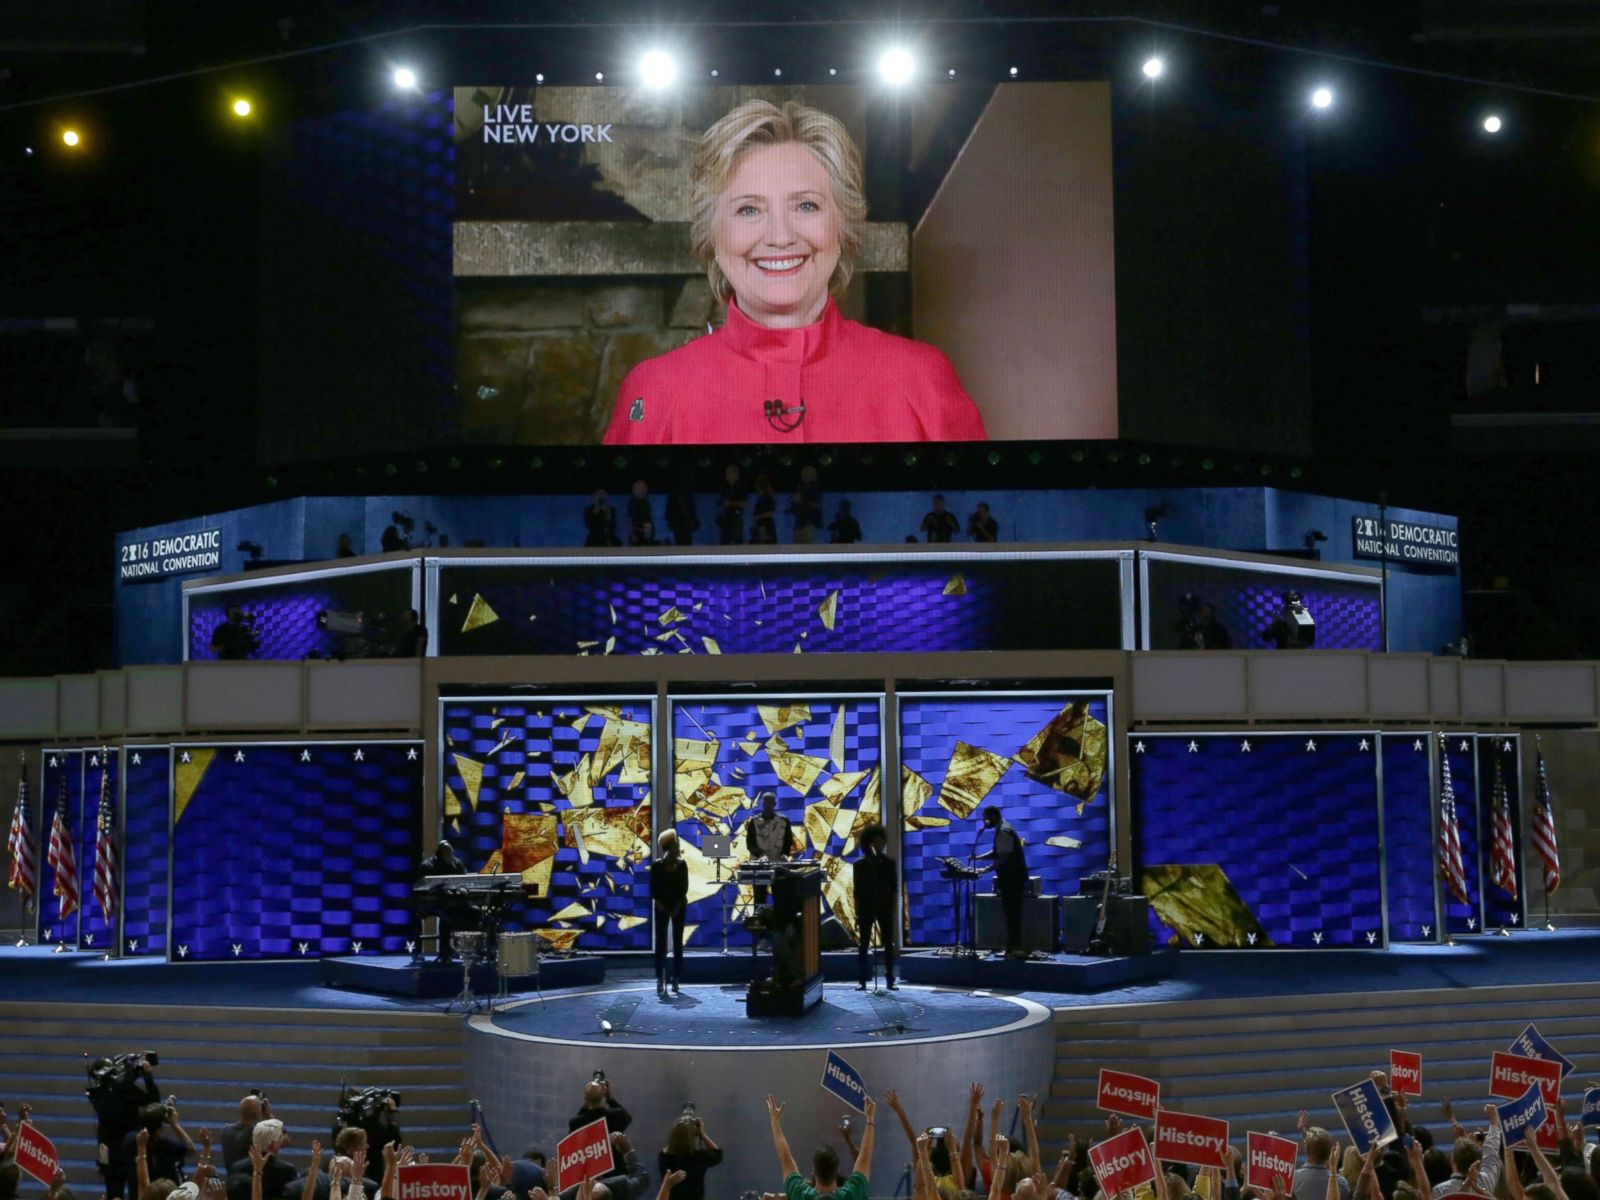 PHOTO: Democratic presidential candidate Hillary Clinton is shown on a screen at the end of the evening session on the second day of the Democratic National Convention, July 26, 2016 in Philadelphia.